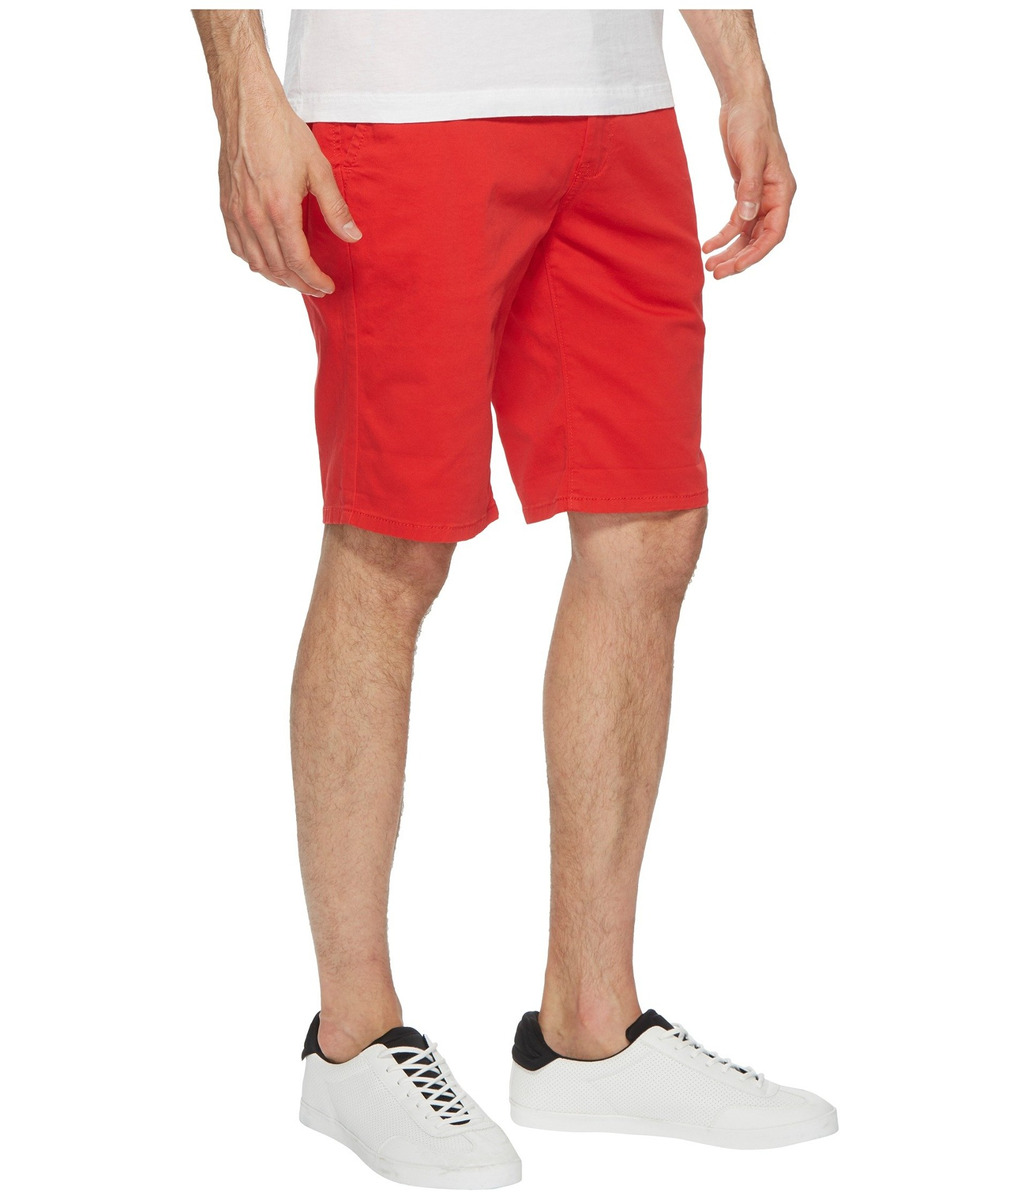 TOMMY HILFIGER DENIM Original Tapered Short Ronnie Wapa